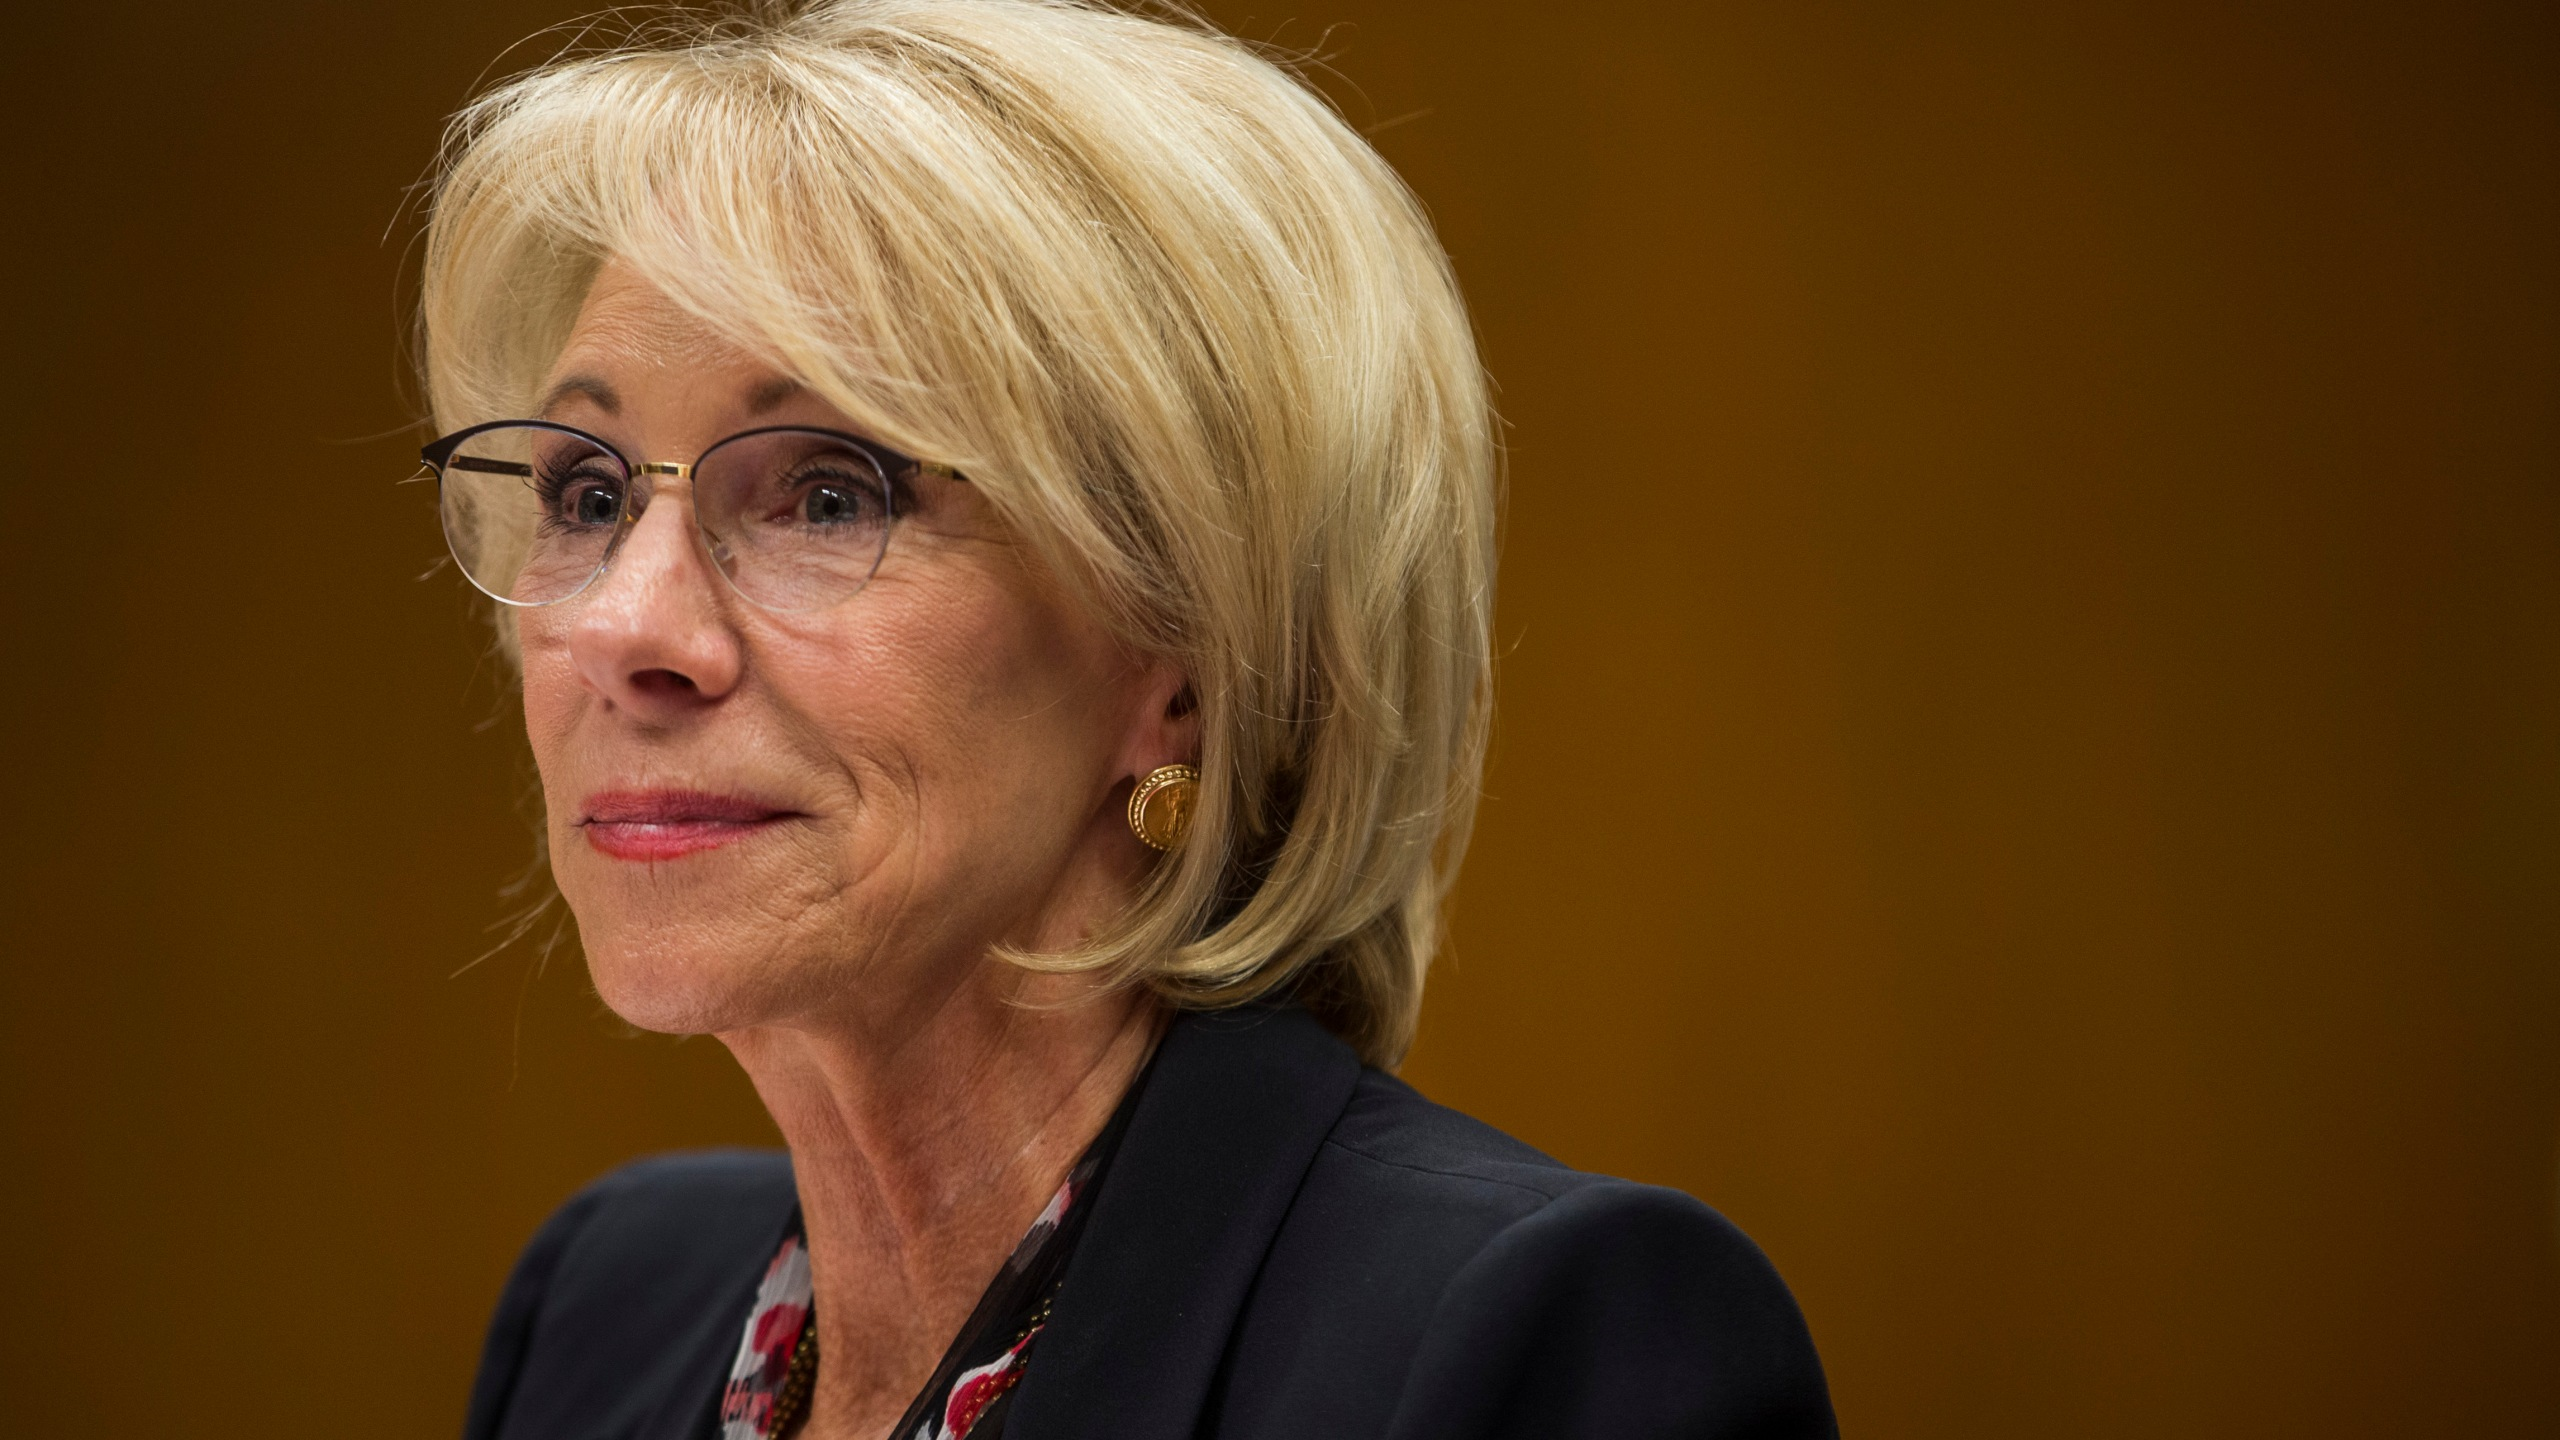 Secretary of Education Betsy DeVos testifies before a Senate subcommittee discussing proposed budget estimates and justification for the Education Department's 2020 budget on March 28, 2019. (Zach Gibson / Getty Images)